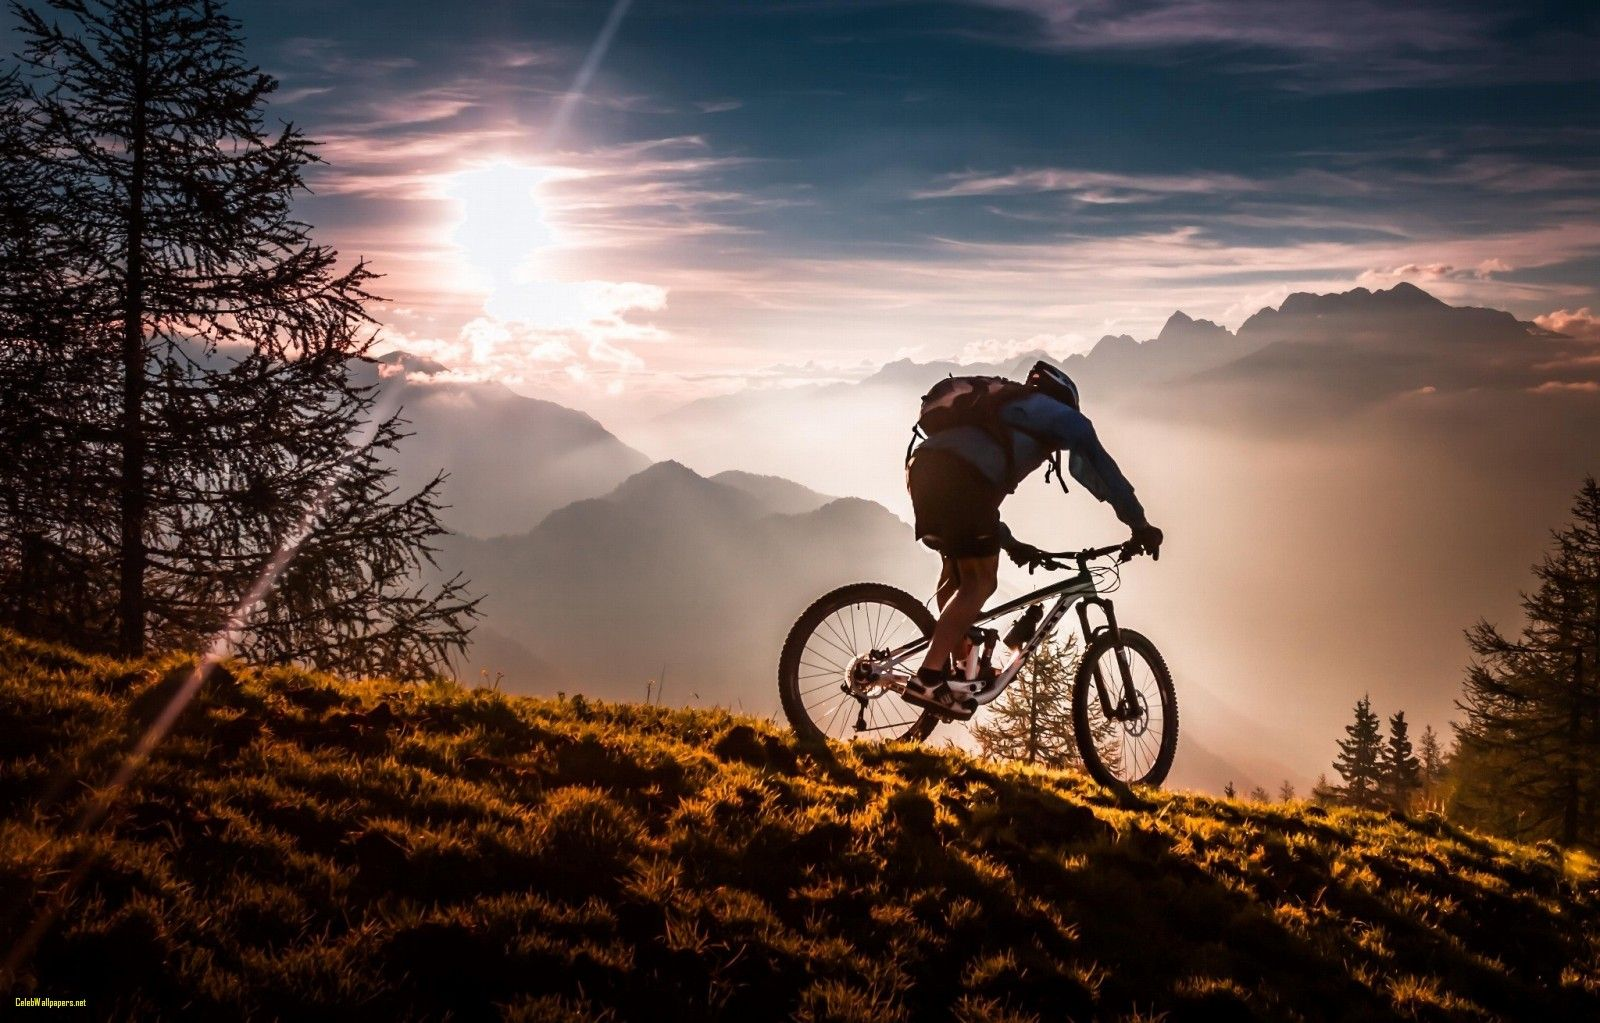 Hd Wallpapers Of Bikes For: Top Free Bicycle Backgrounds